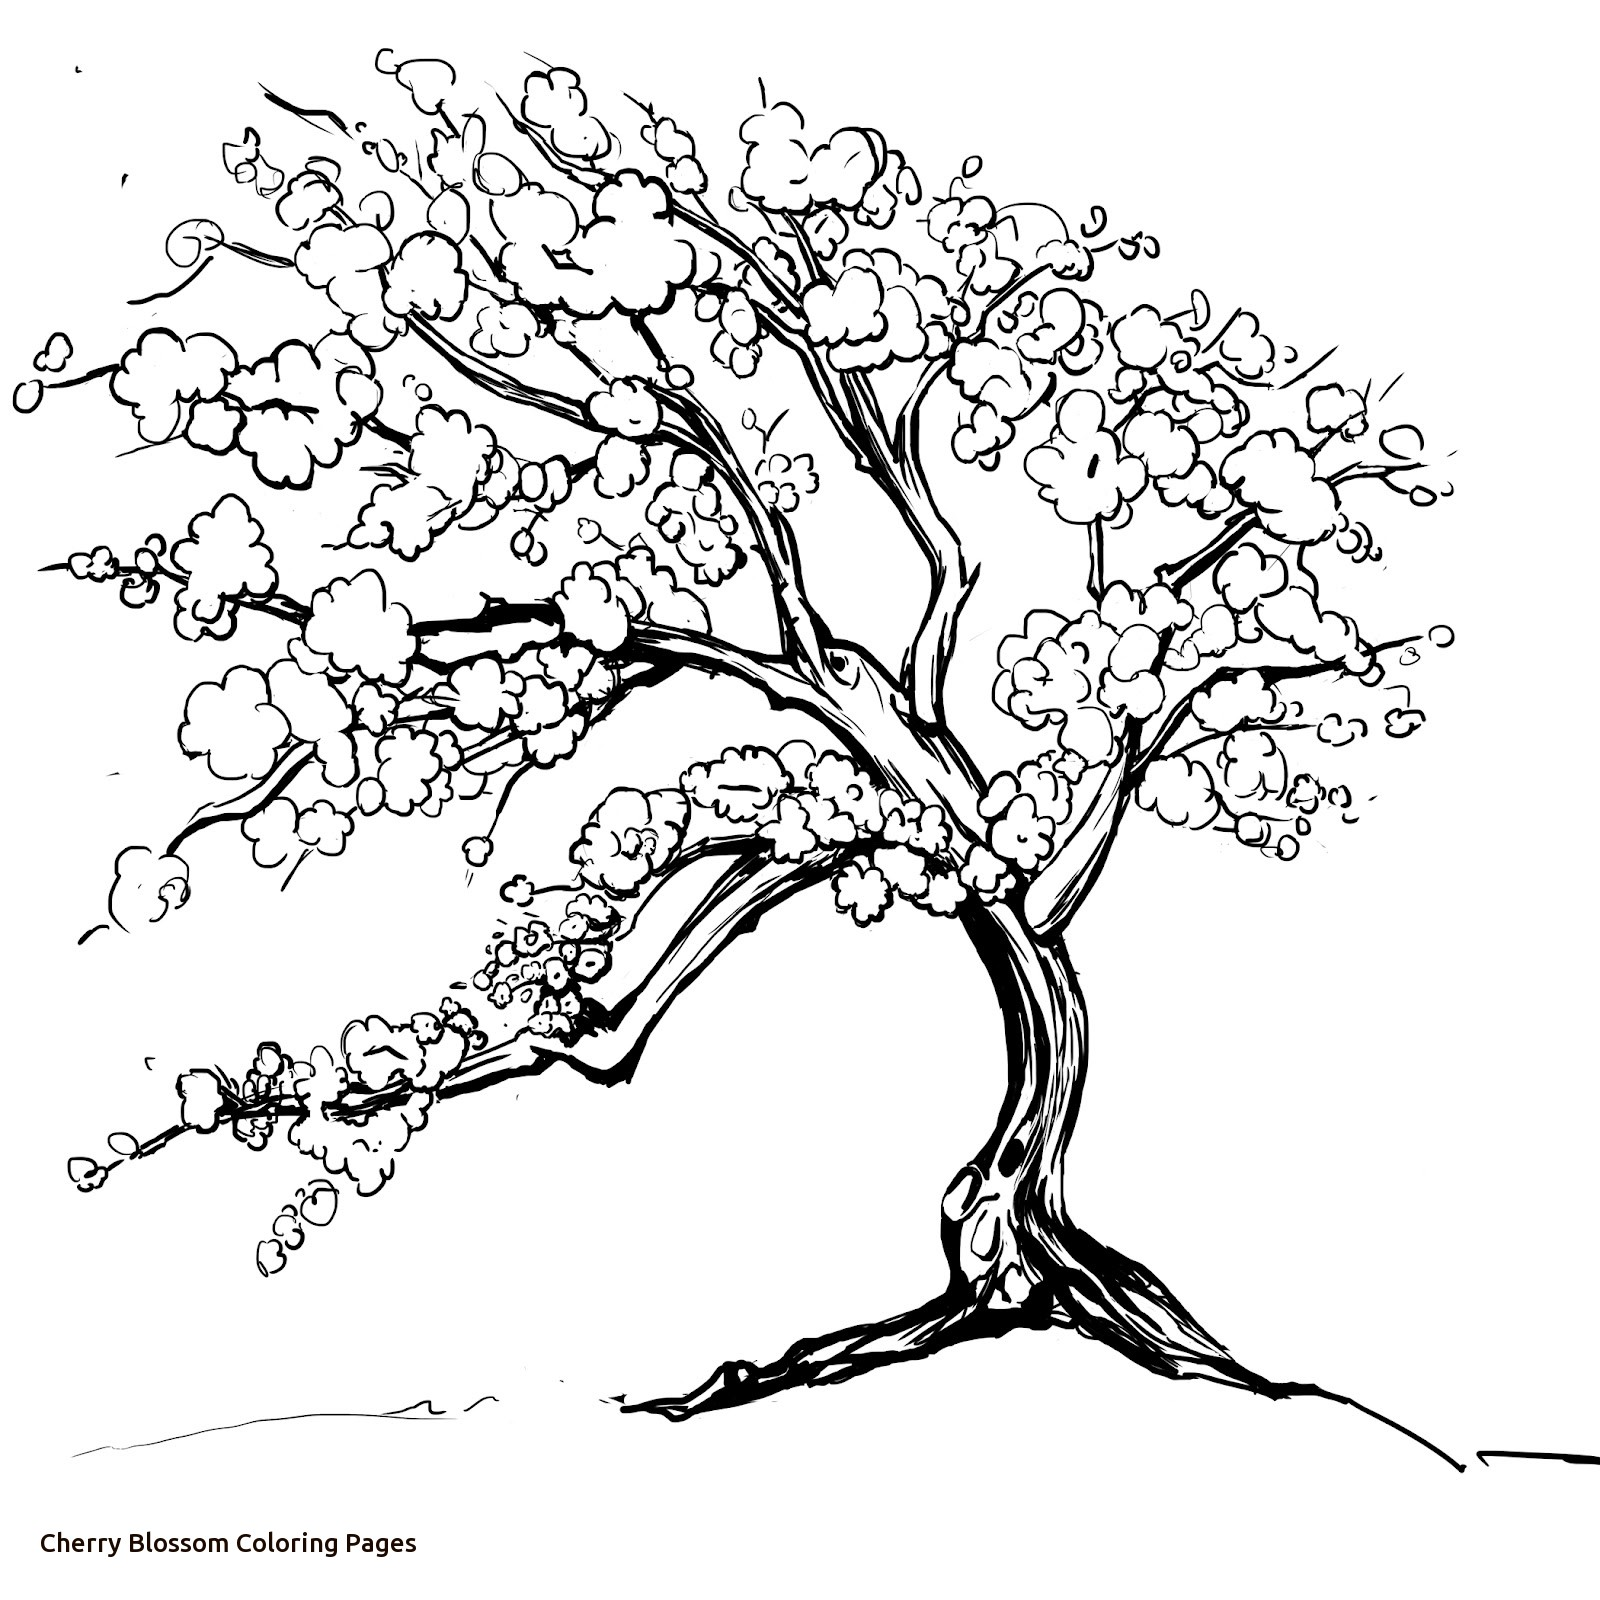 1600x1600 Cherry Blossom Coloring Pages Within Tree Page Glum